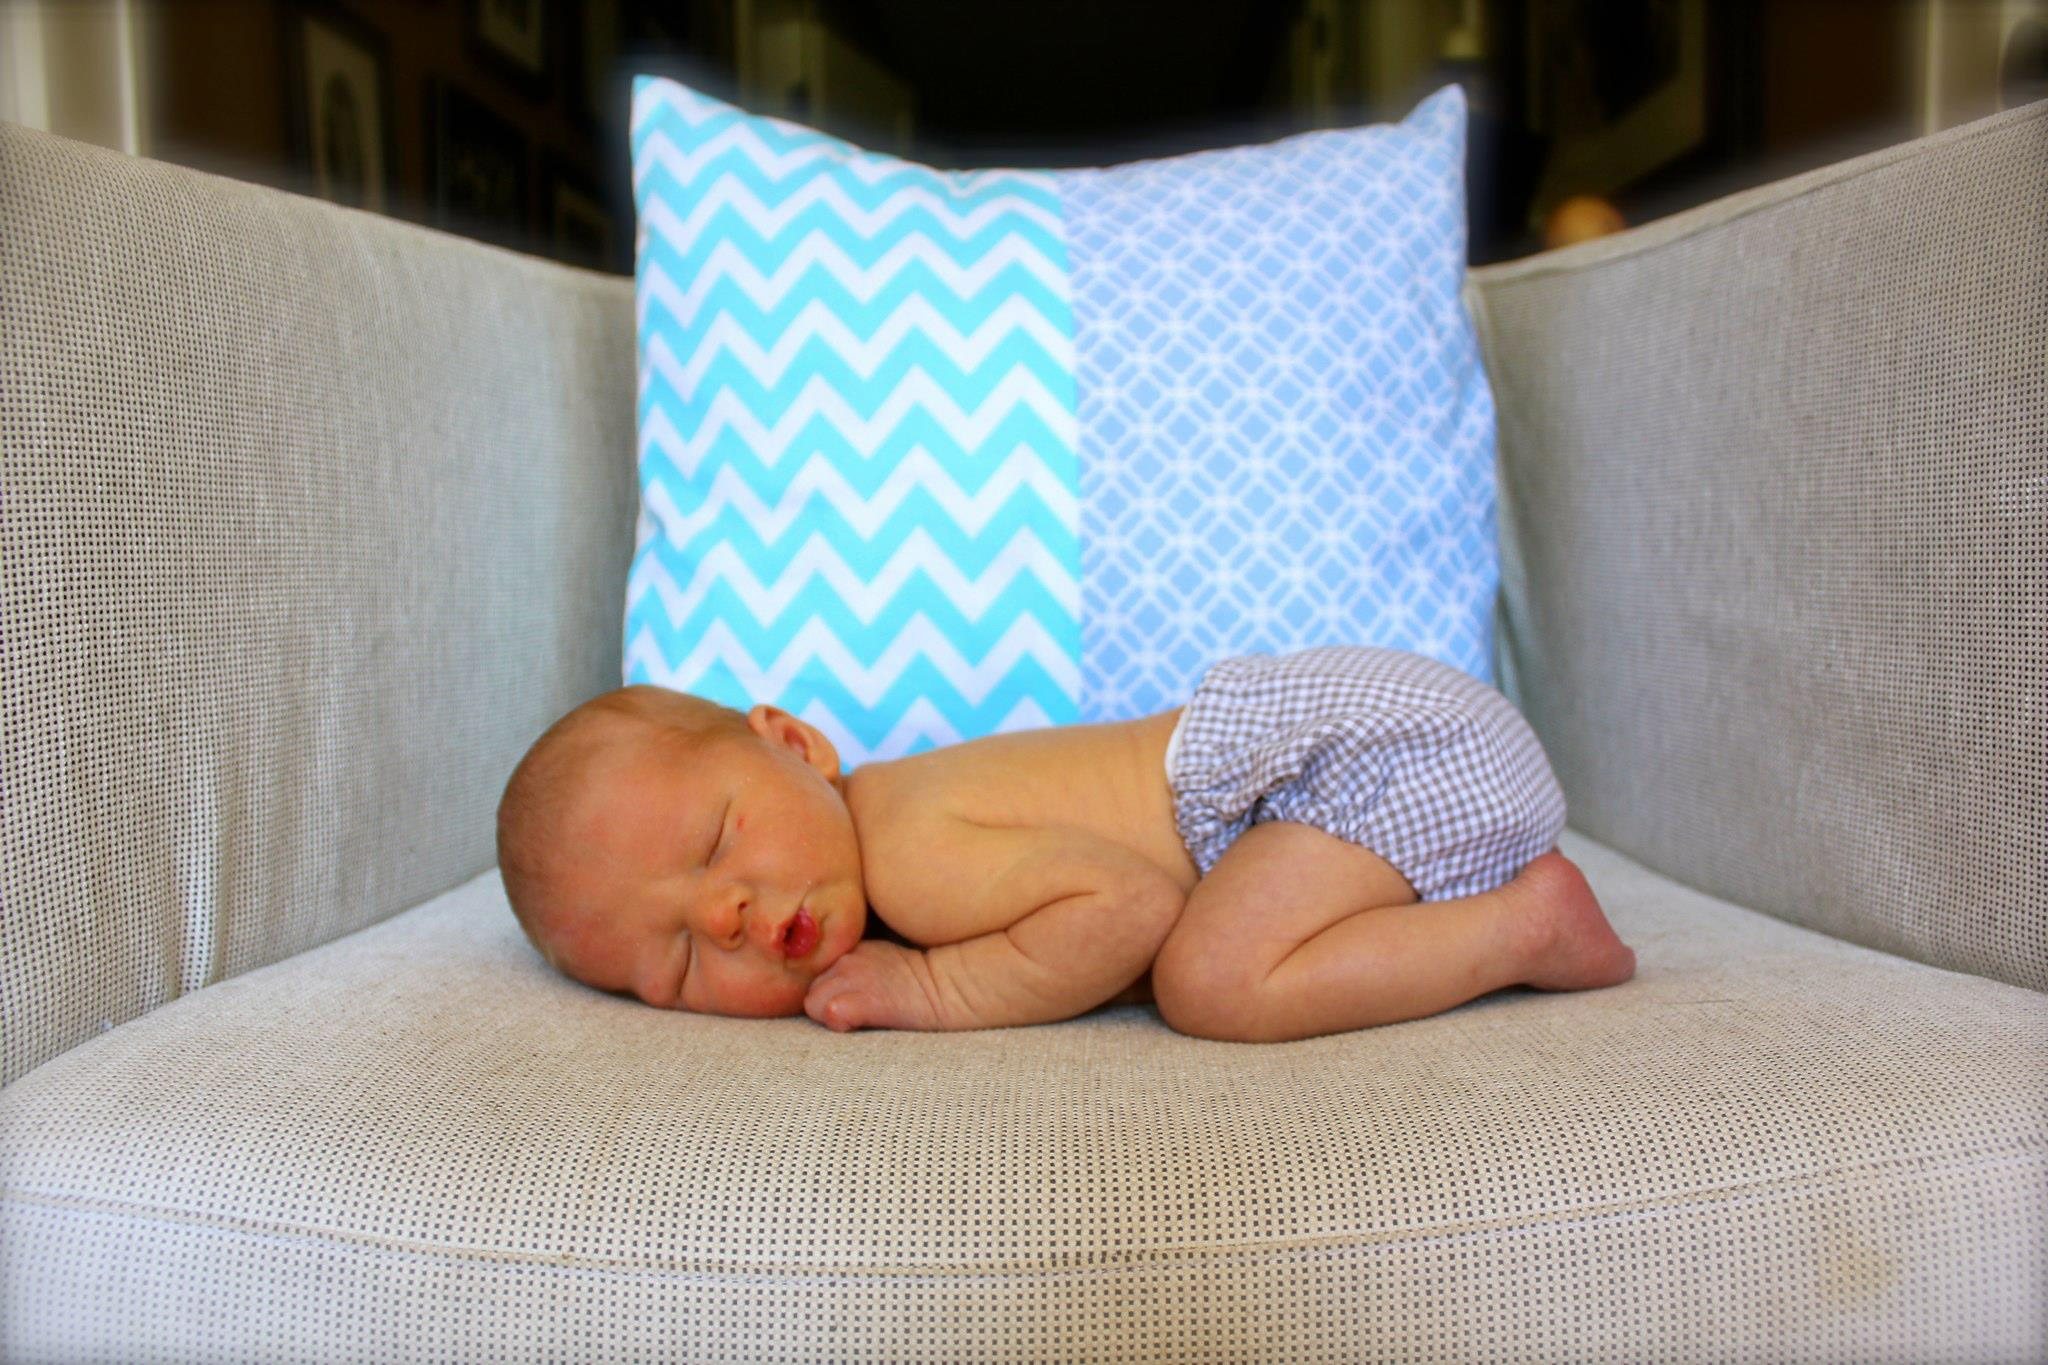 Forget the Registry: 15 Things Every Mom-To-Be REALLY Wants SheJustGlows.com